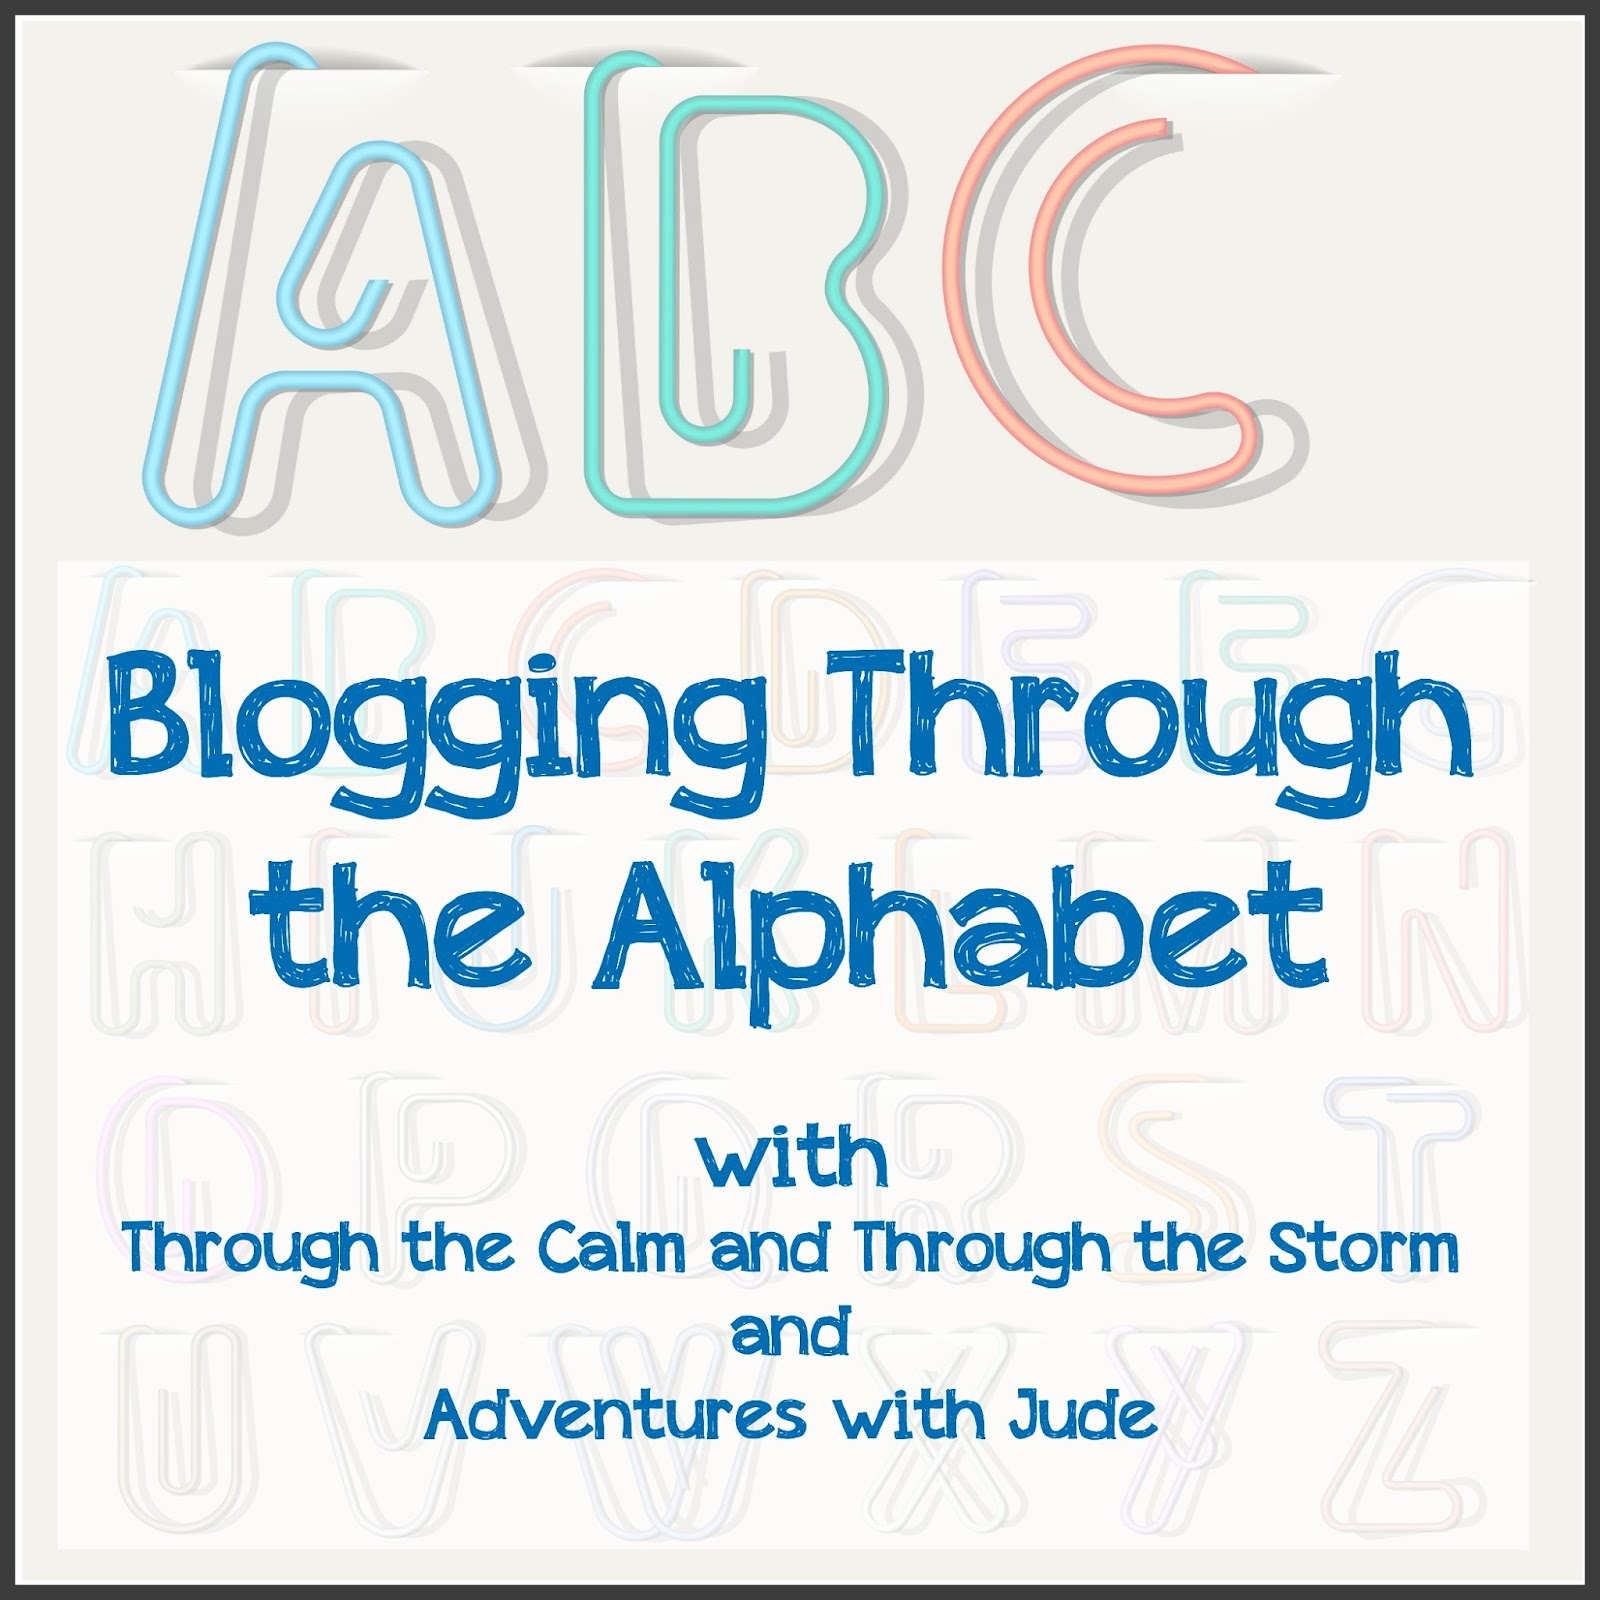 Blogging Through the Alphabet with Cristi and Meg